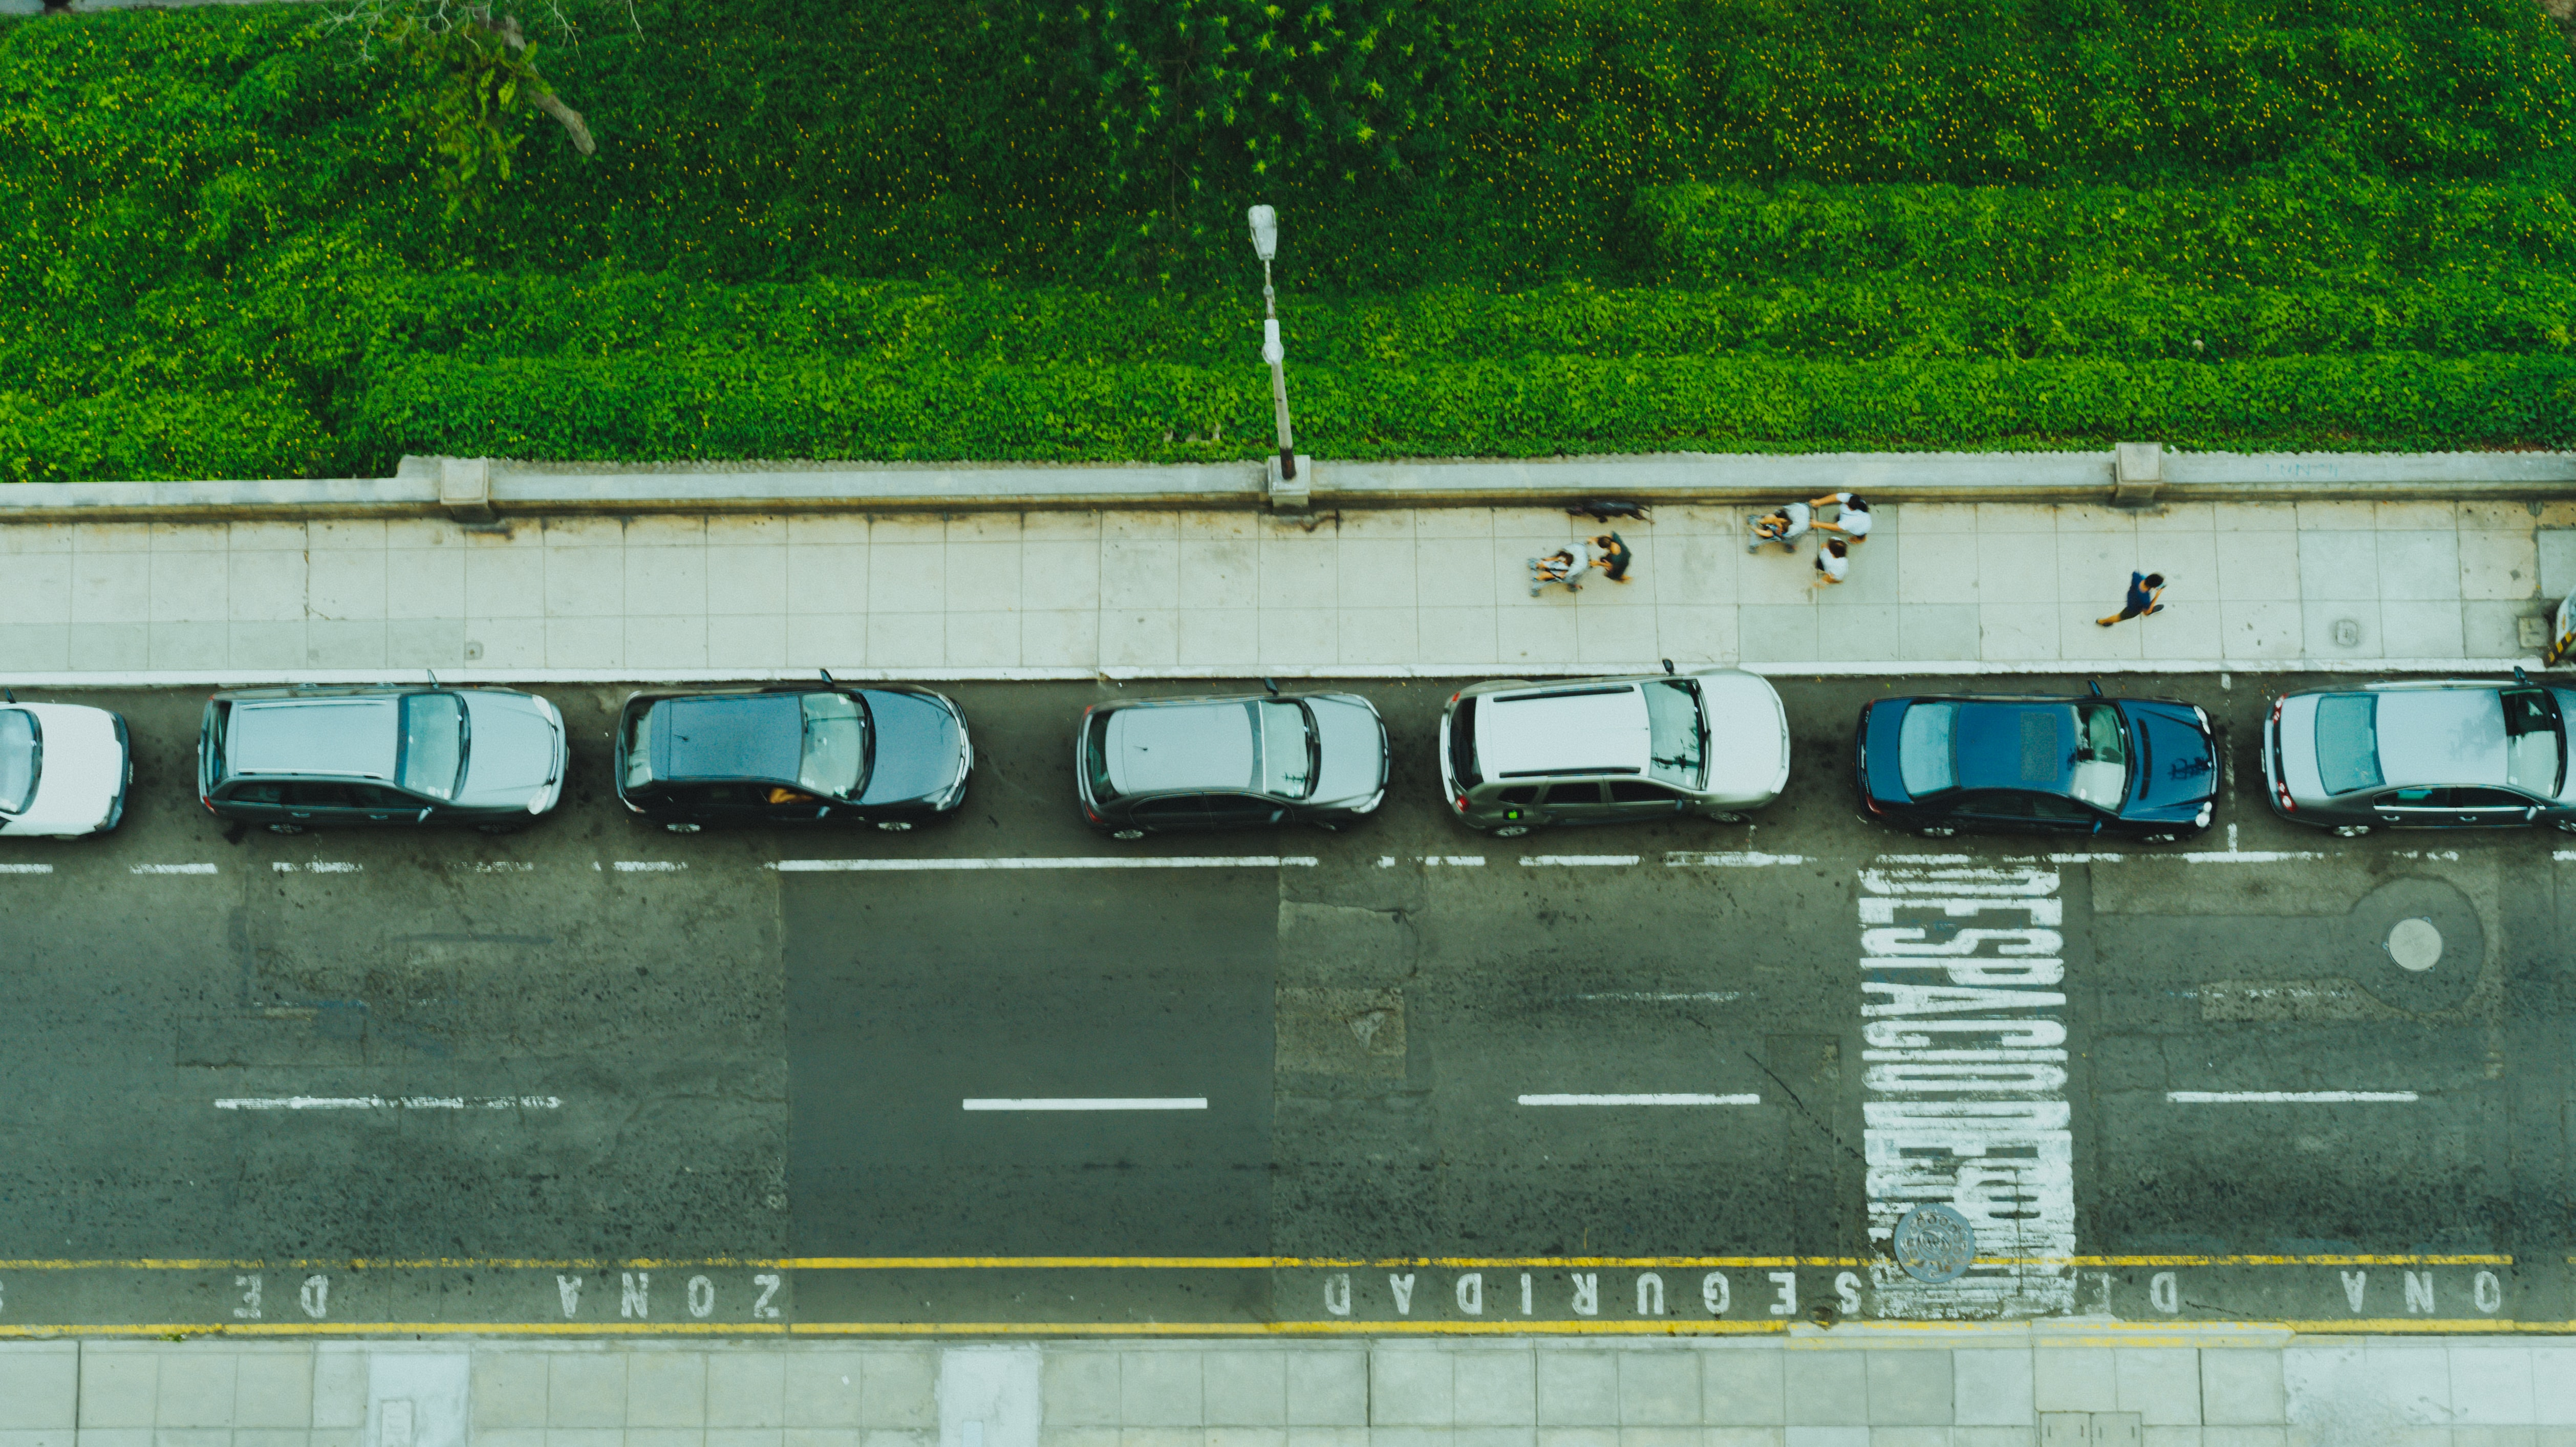 Drone shot of a row of cars parked by the curb.